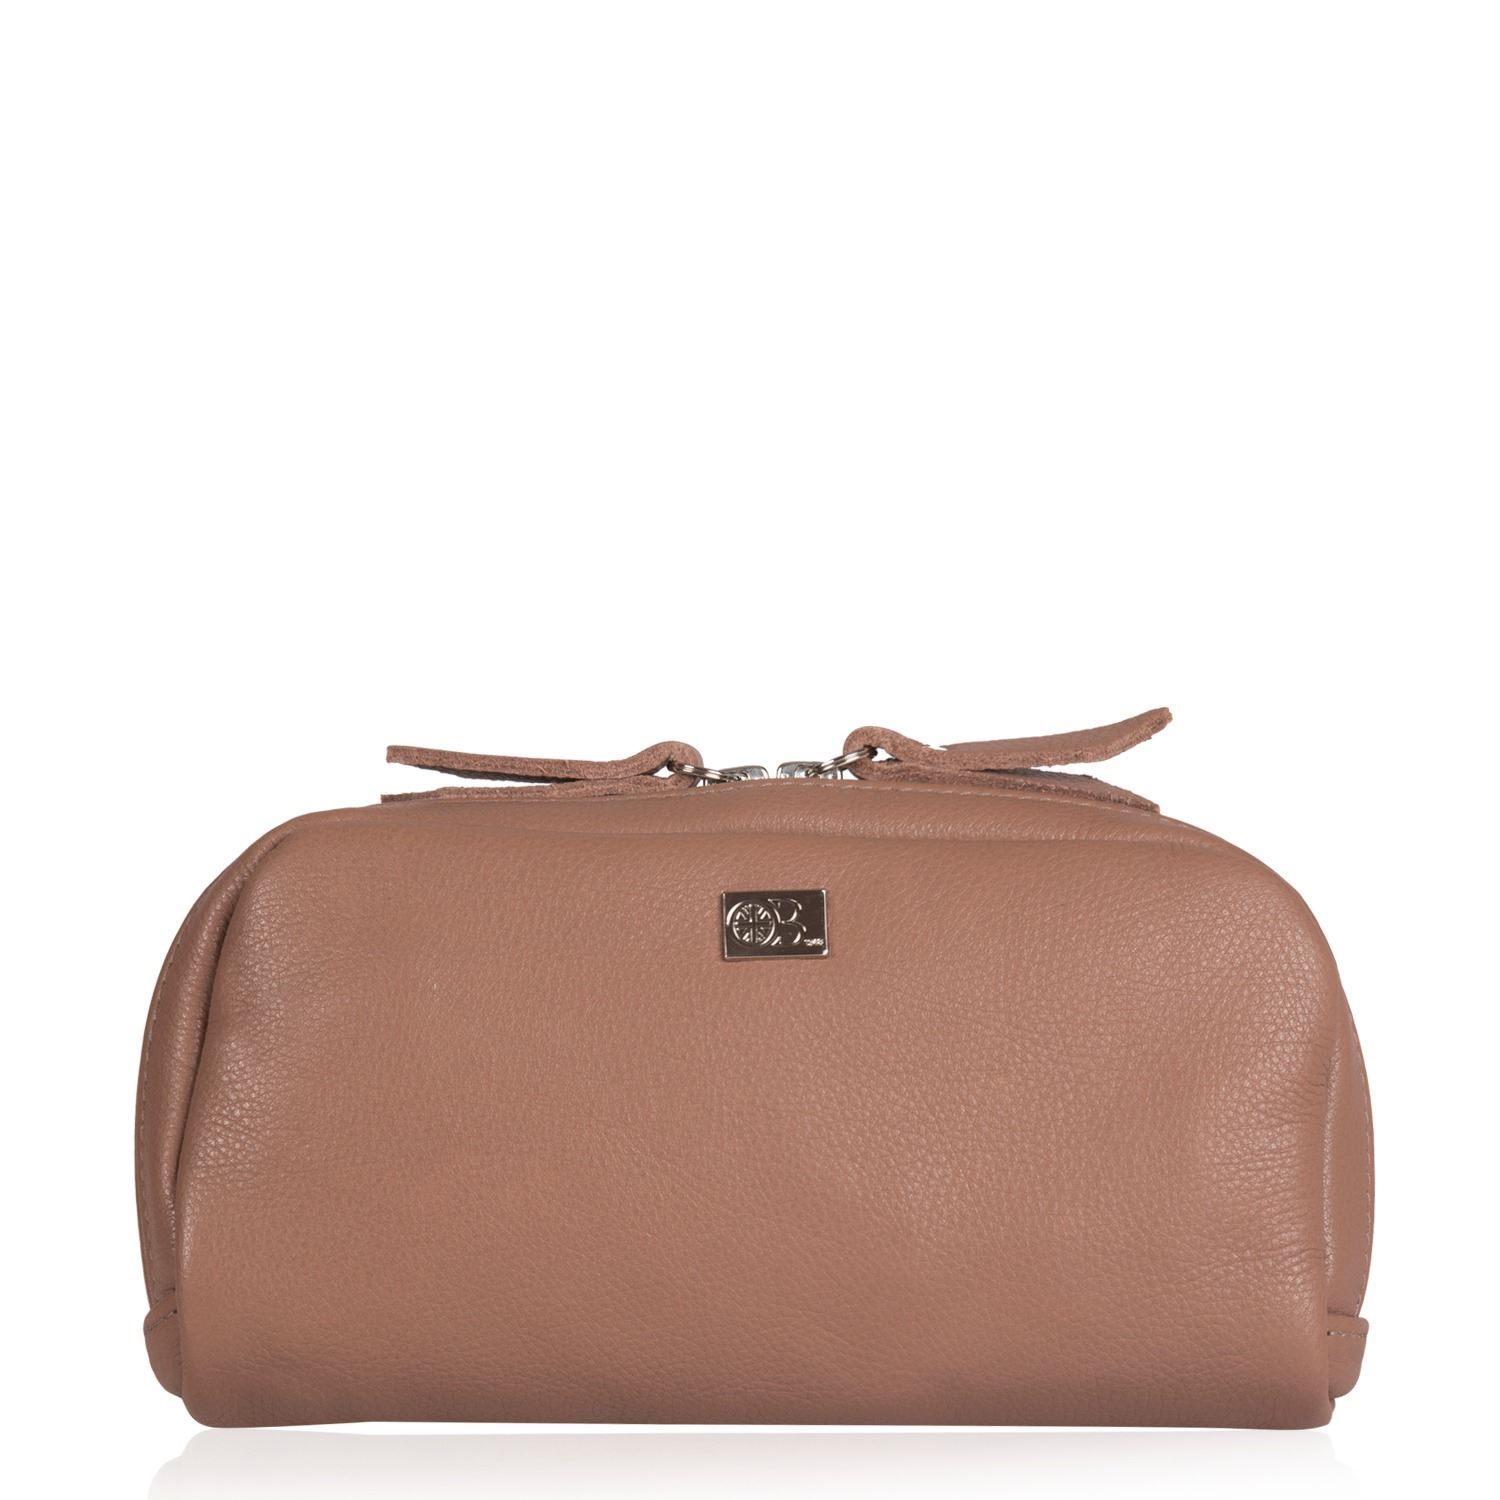 Leather Cosmetics Pouch - Yves